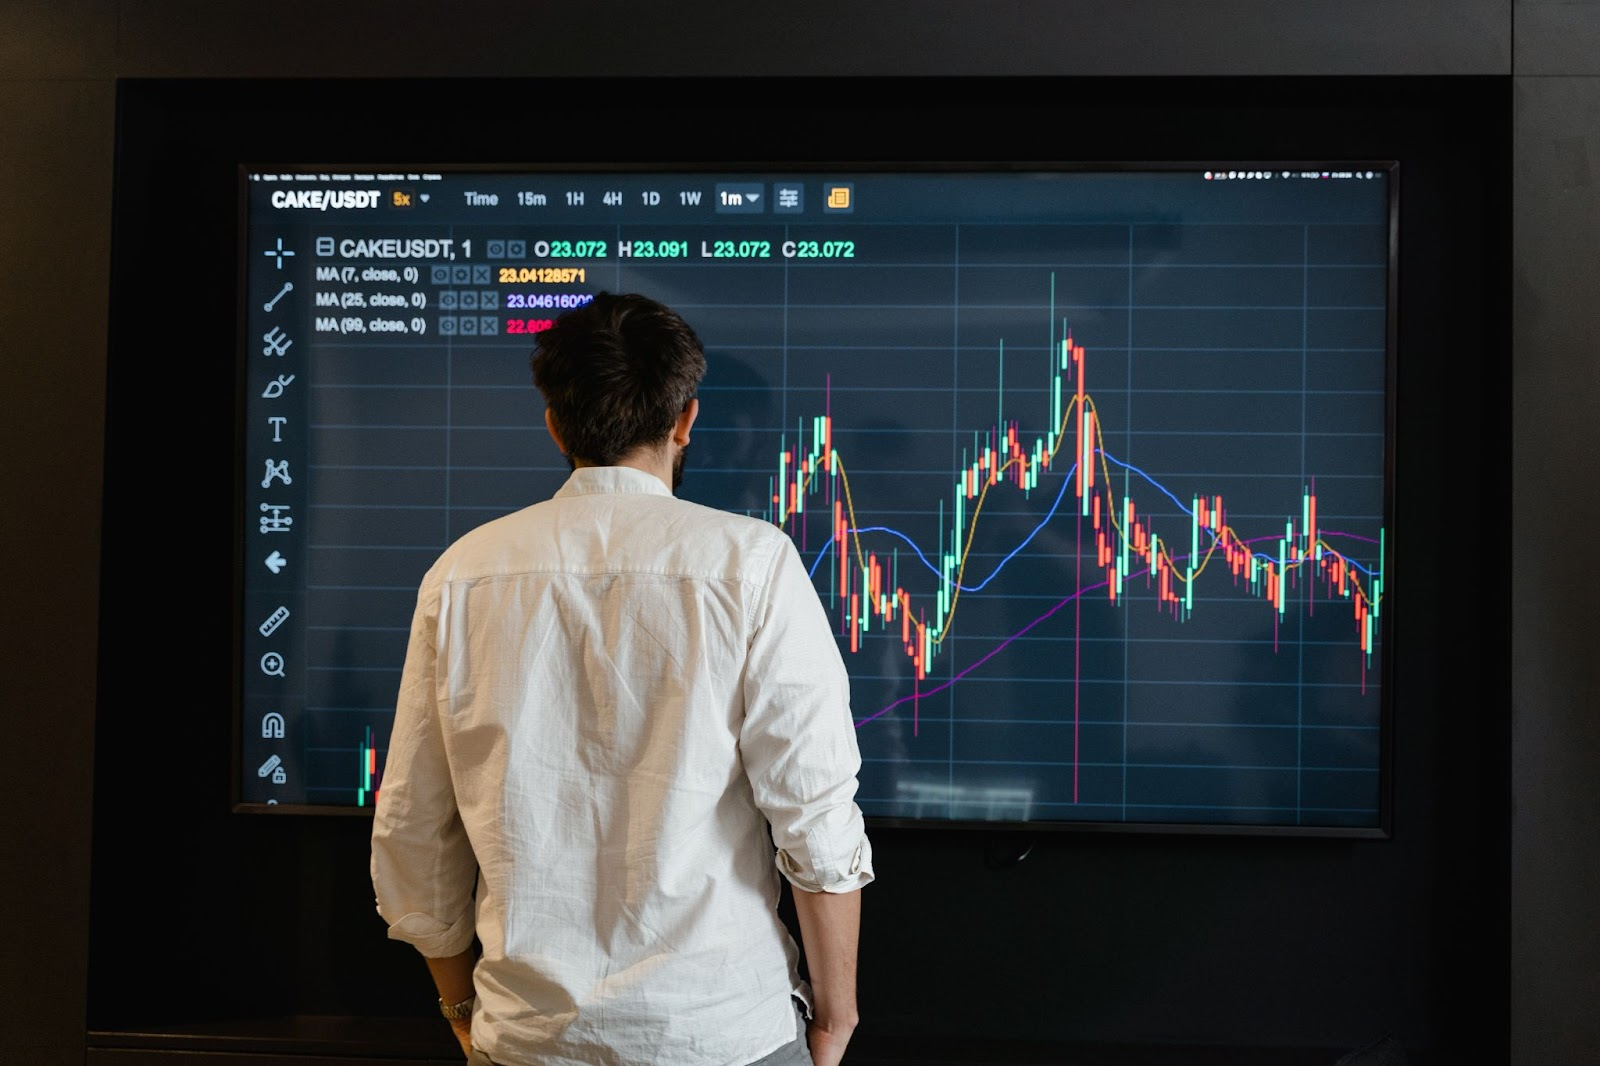 """While chasing the next Bitcoin """"moon,"""" amateur speculators often spend all day long in front of their computers, watching charts and participating in message boards and chat rooms, unable to realize cryptocurrency's market is controlled, and made, by entities in communist China."""